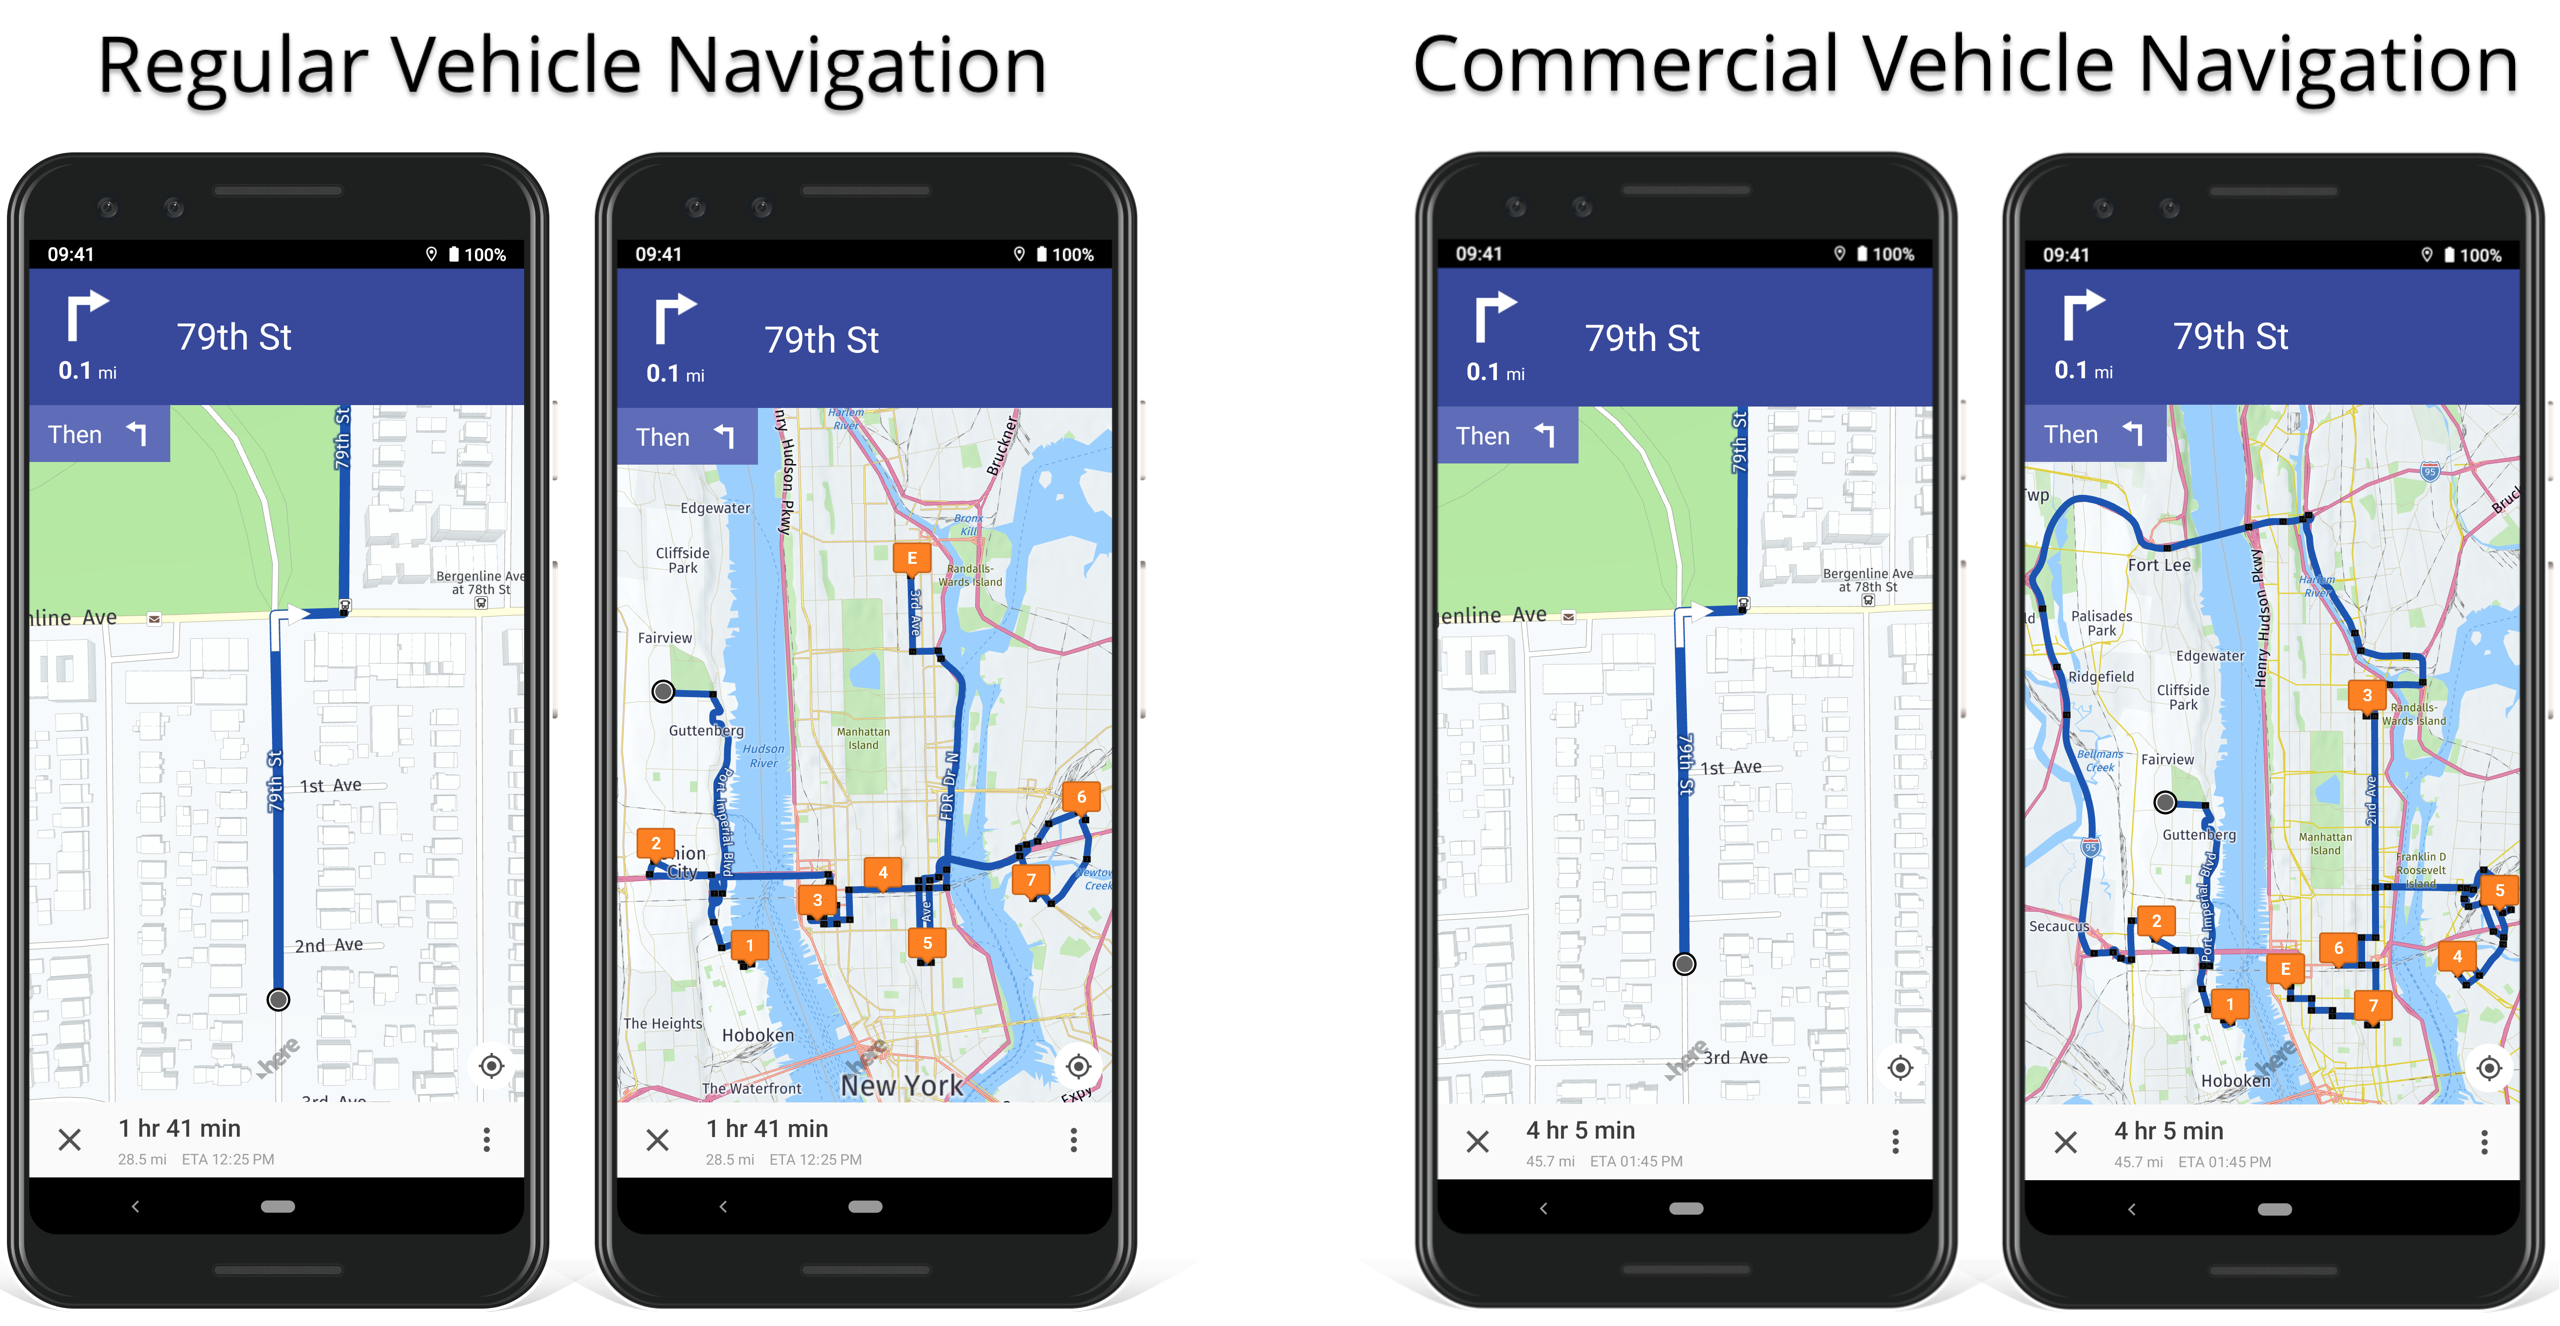 The difference between regular and commercial navigation directions and visitation sequences.